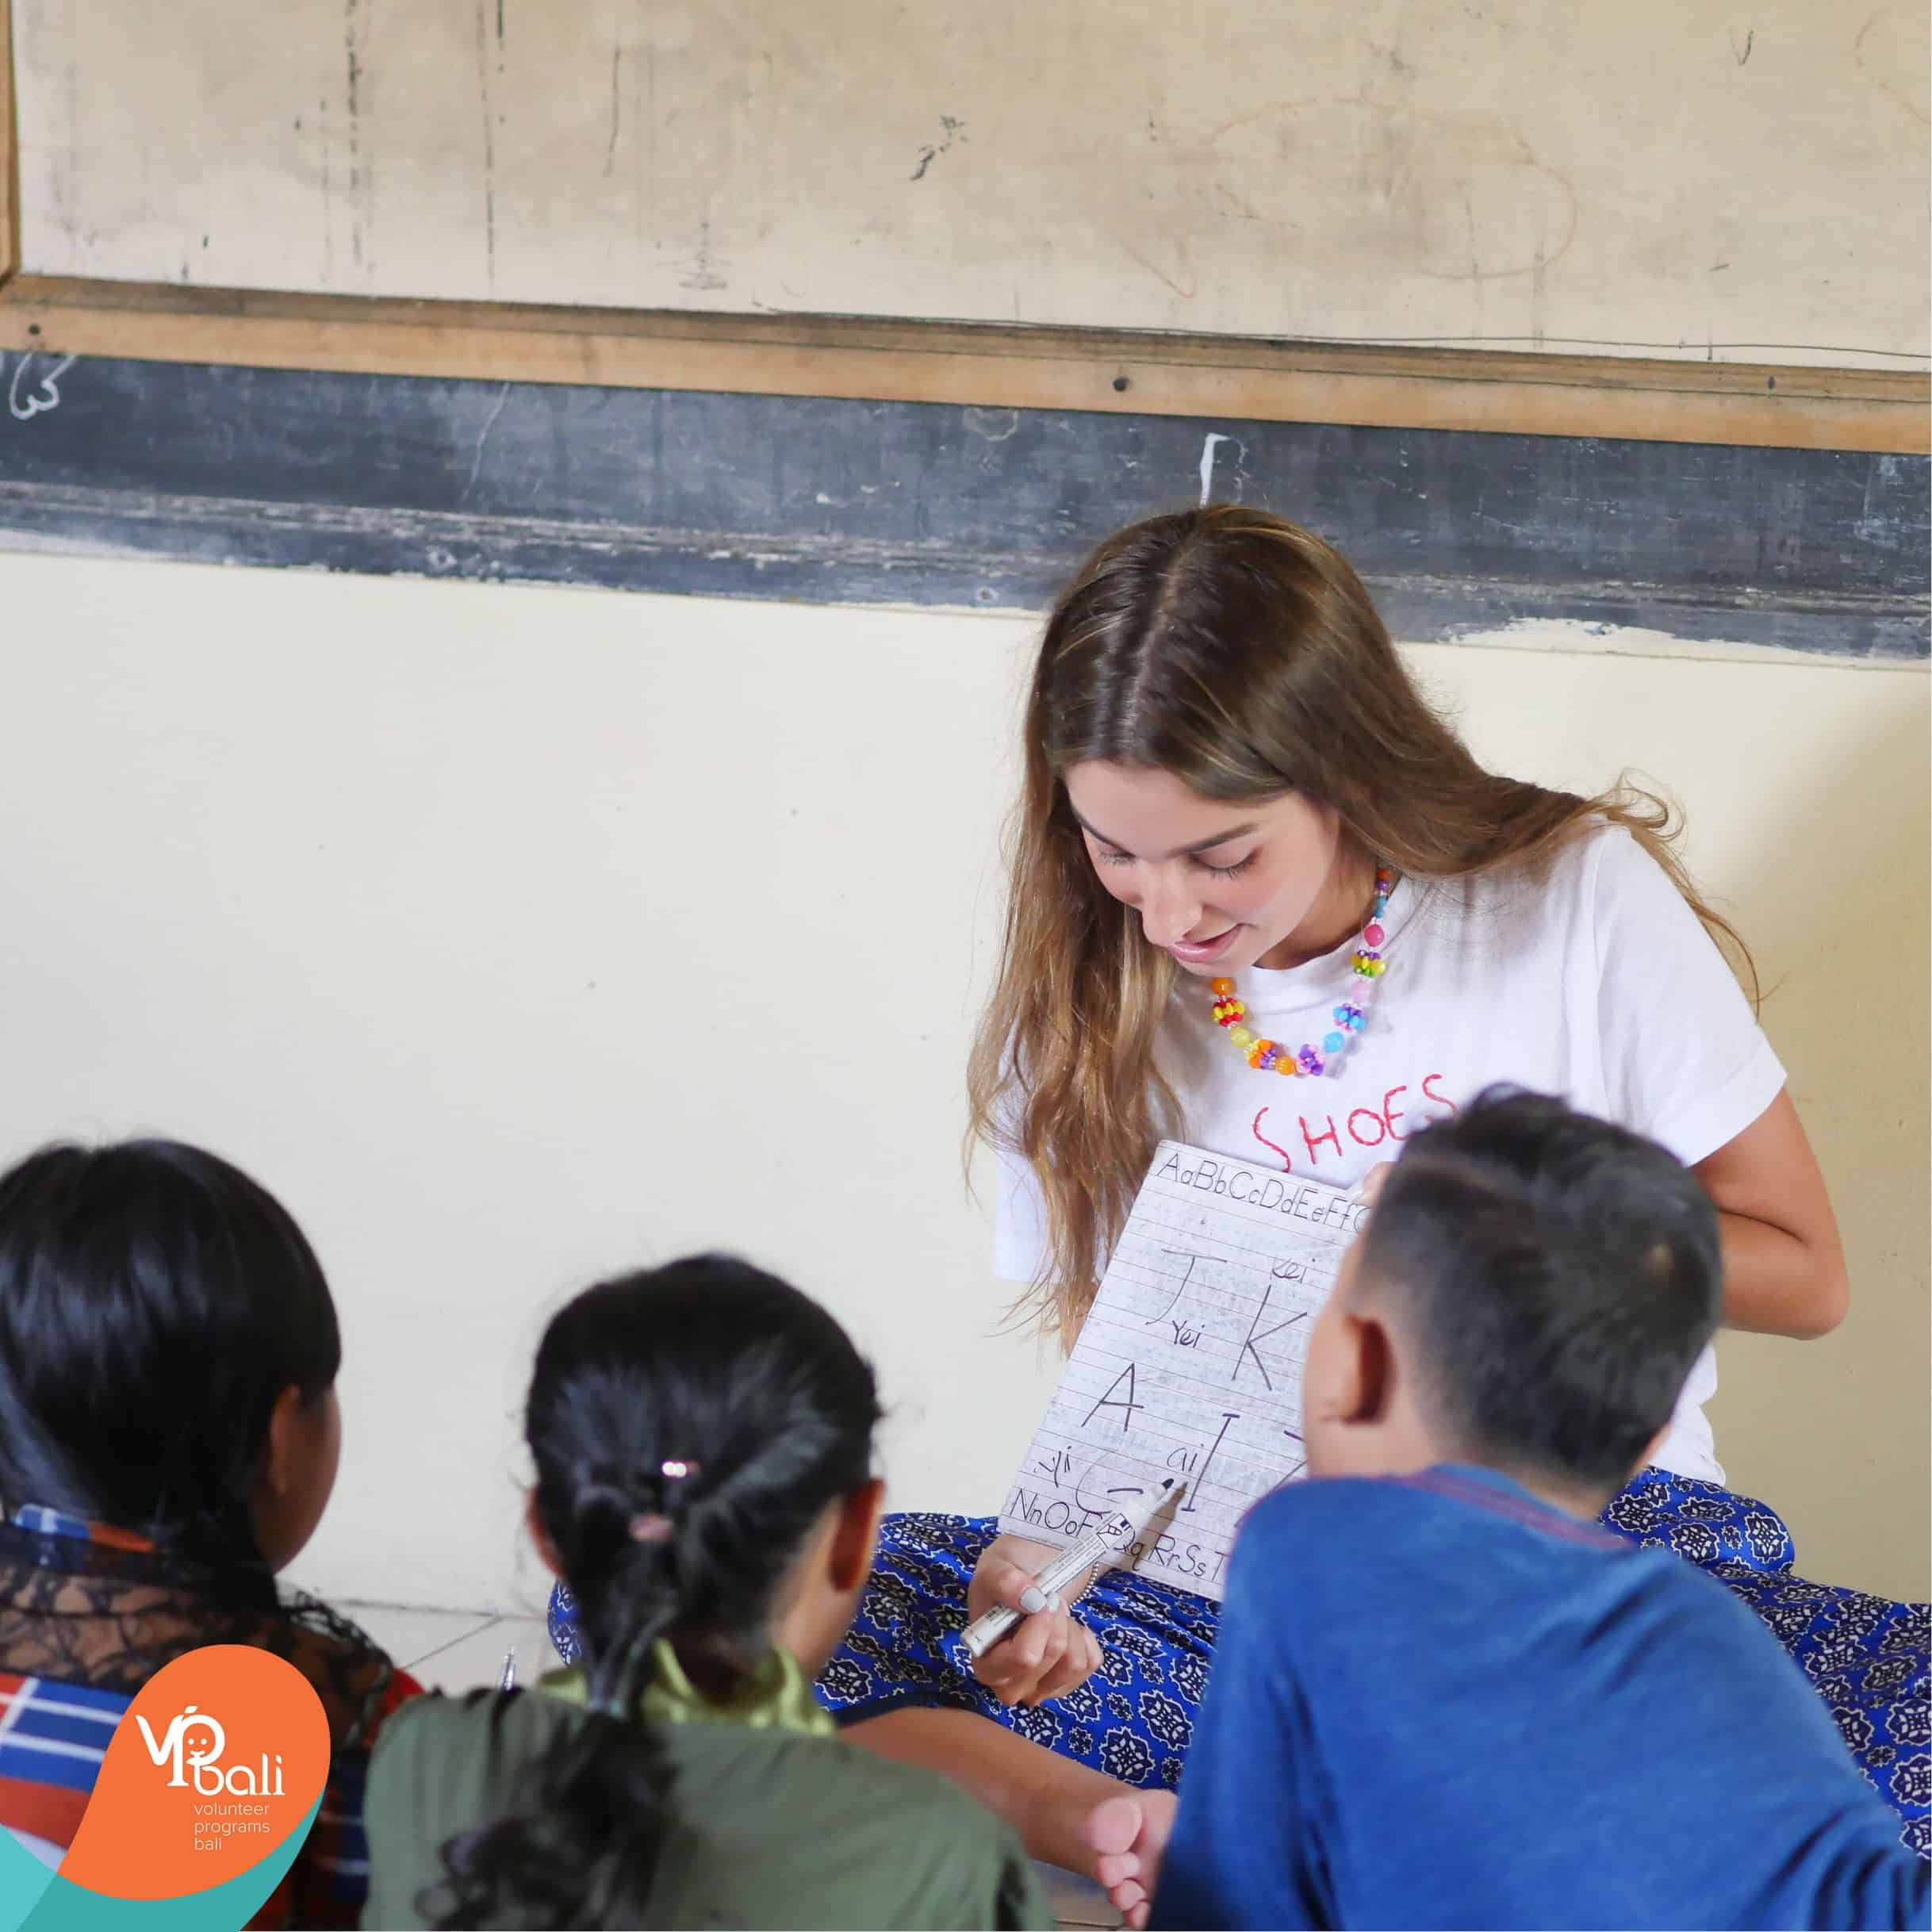 Outside of our creative learning techniques, we create our own little melting pot between all of our volunteers from different countries. When volunteers from different cultures, speaking different first languages co-teach together, it allows our students to get a glimpse of cultures beyond the island they call home.